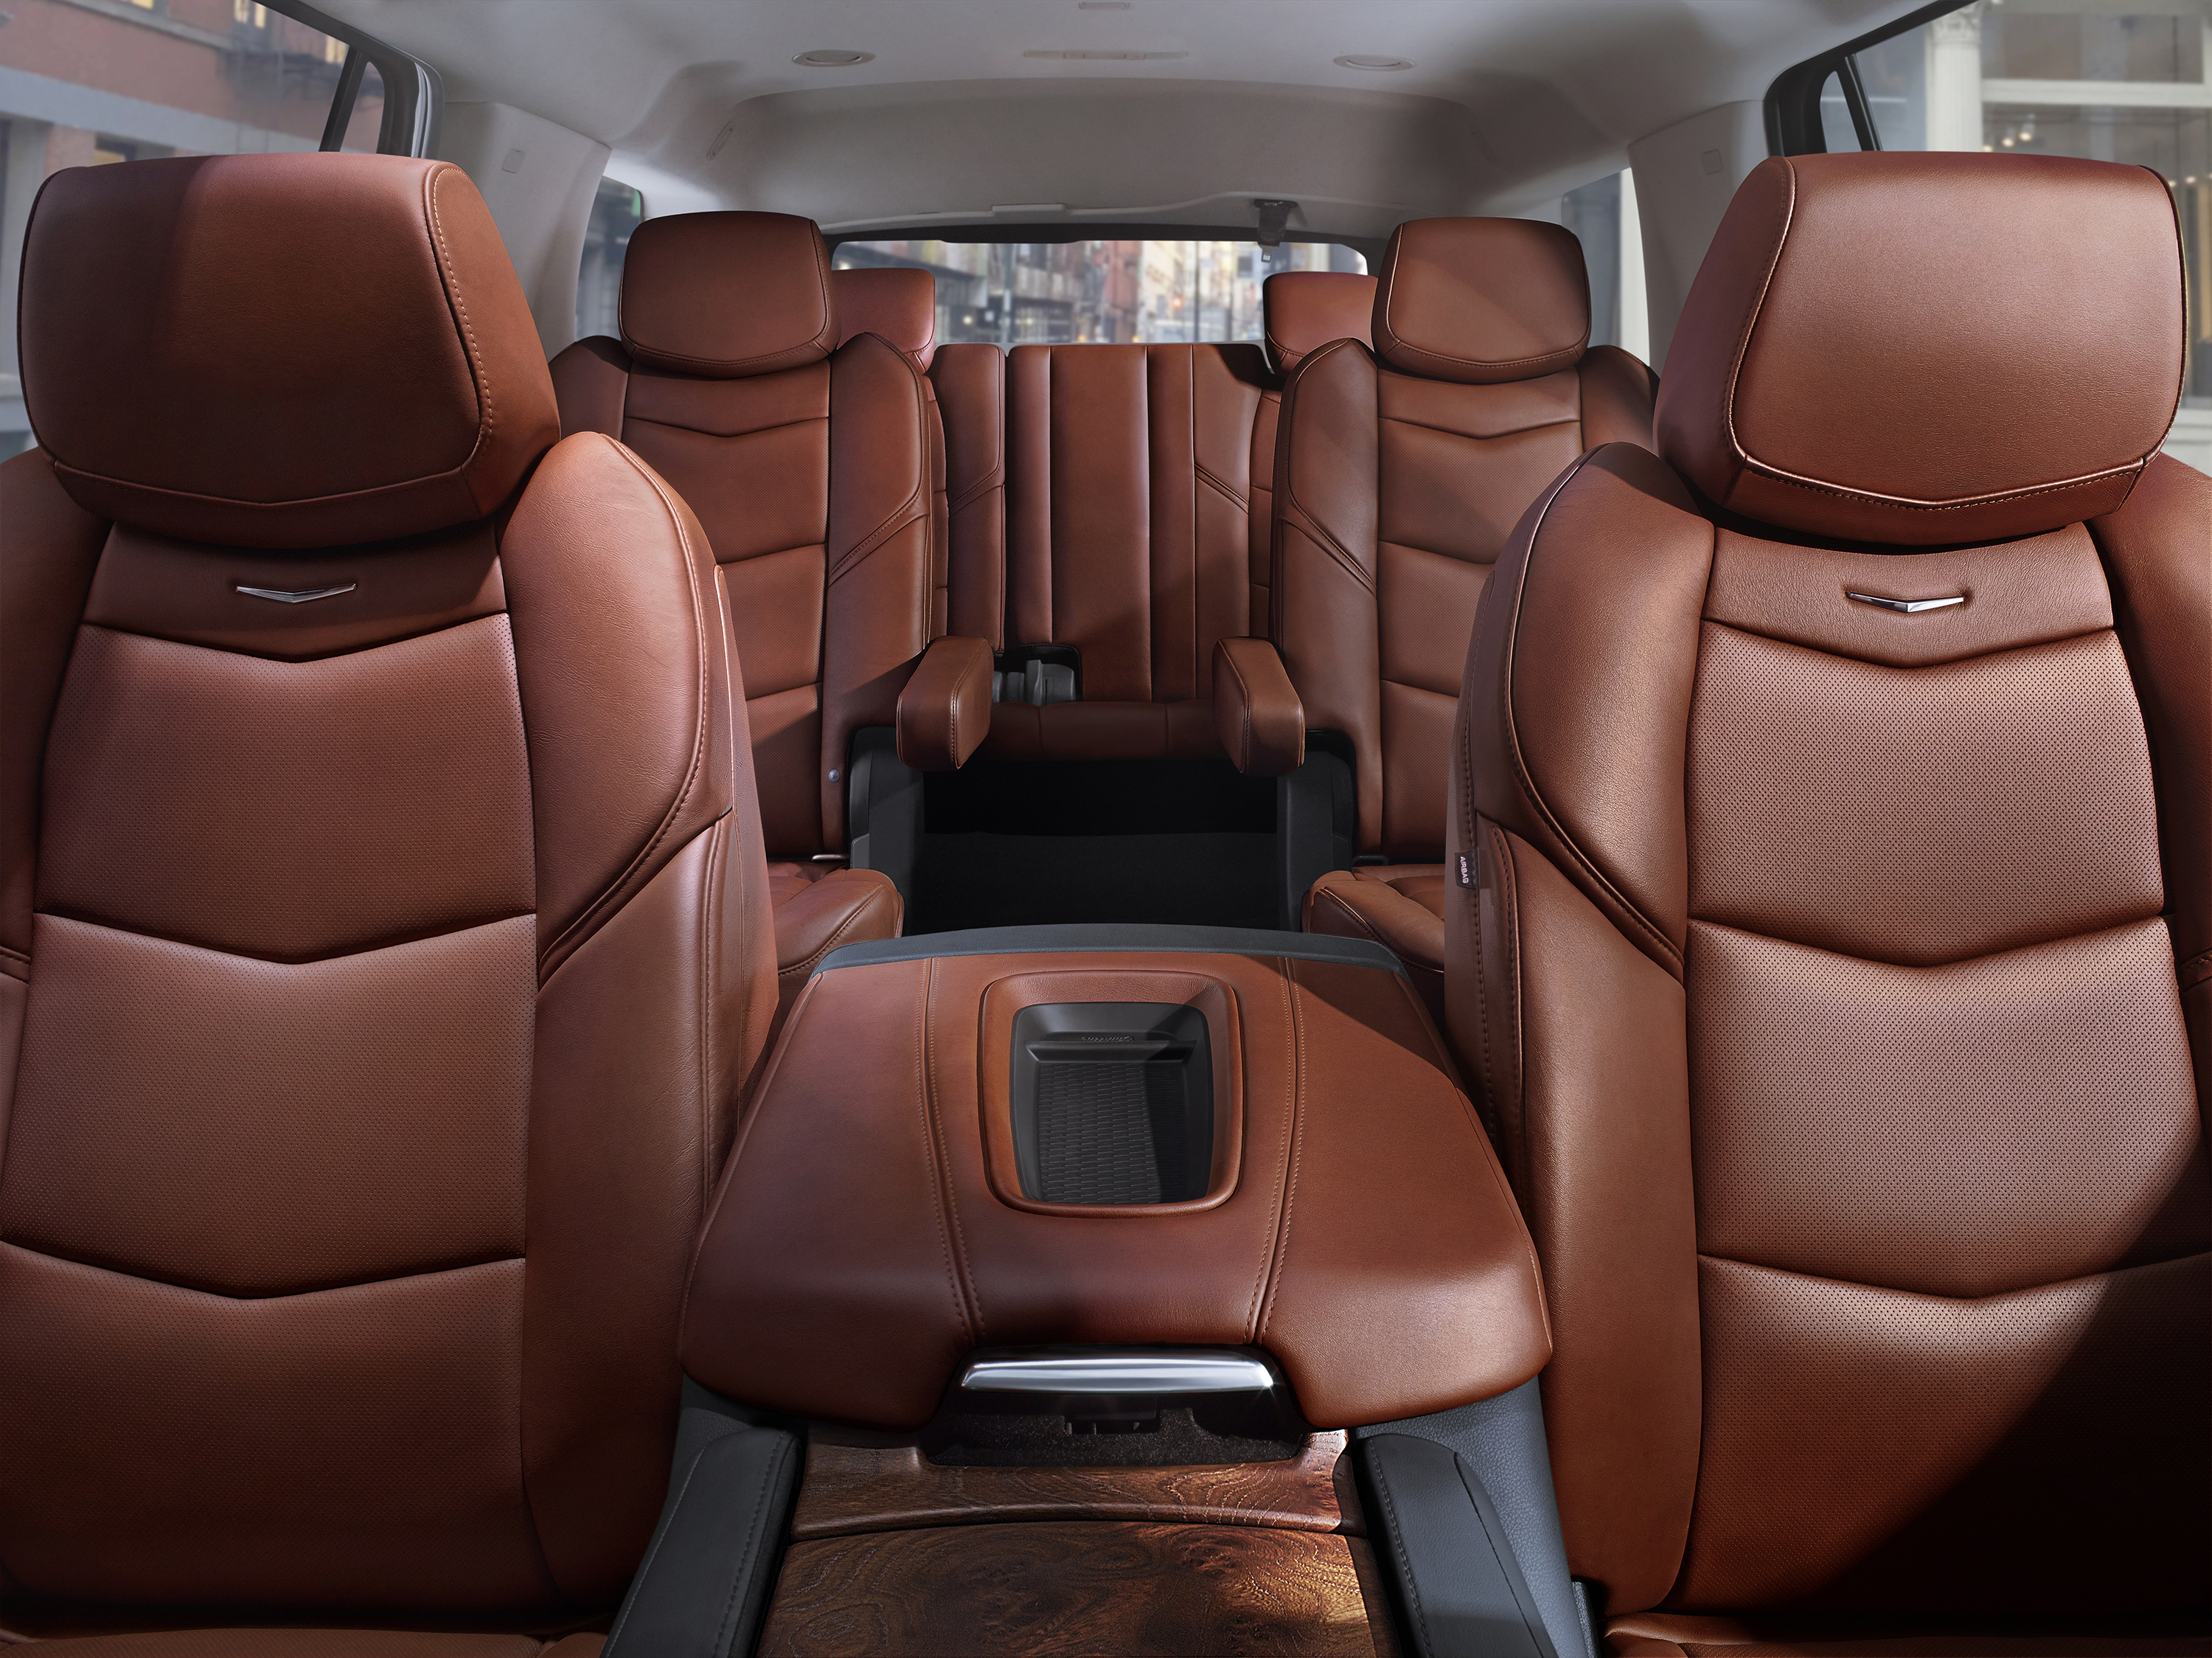 2017 Escalade Interior Design Metroplex Cadillac Dealers